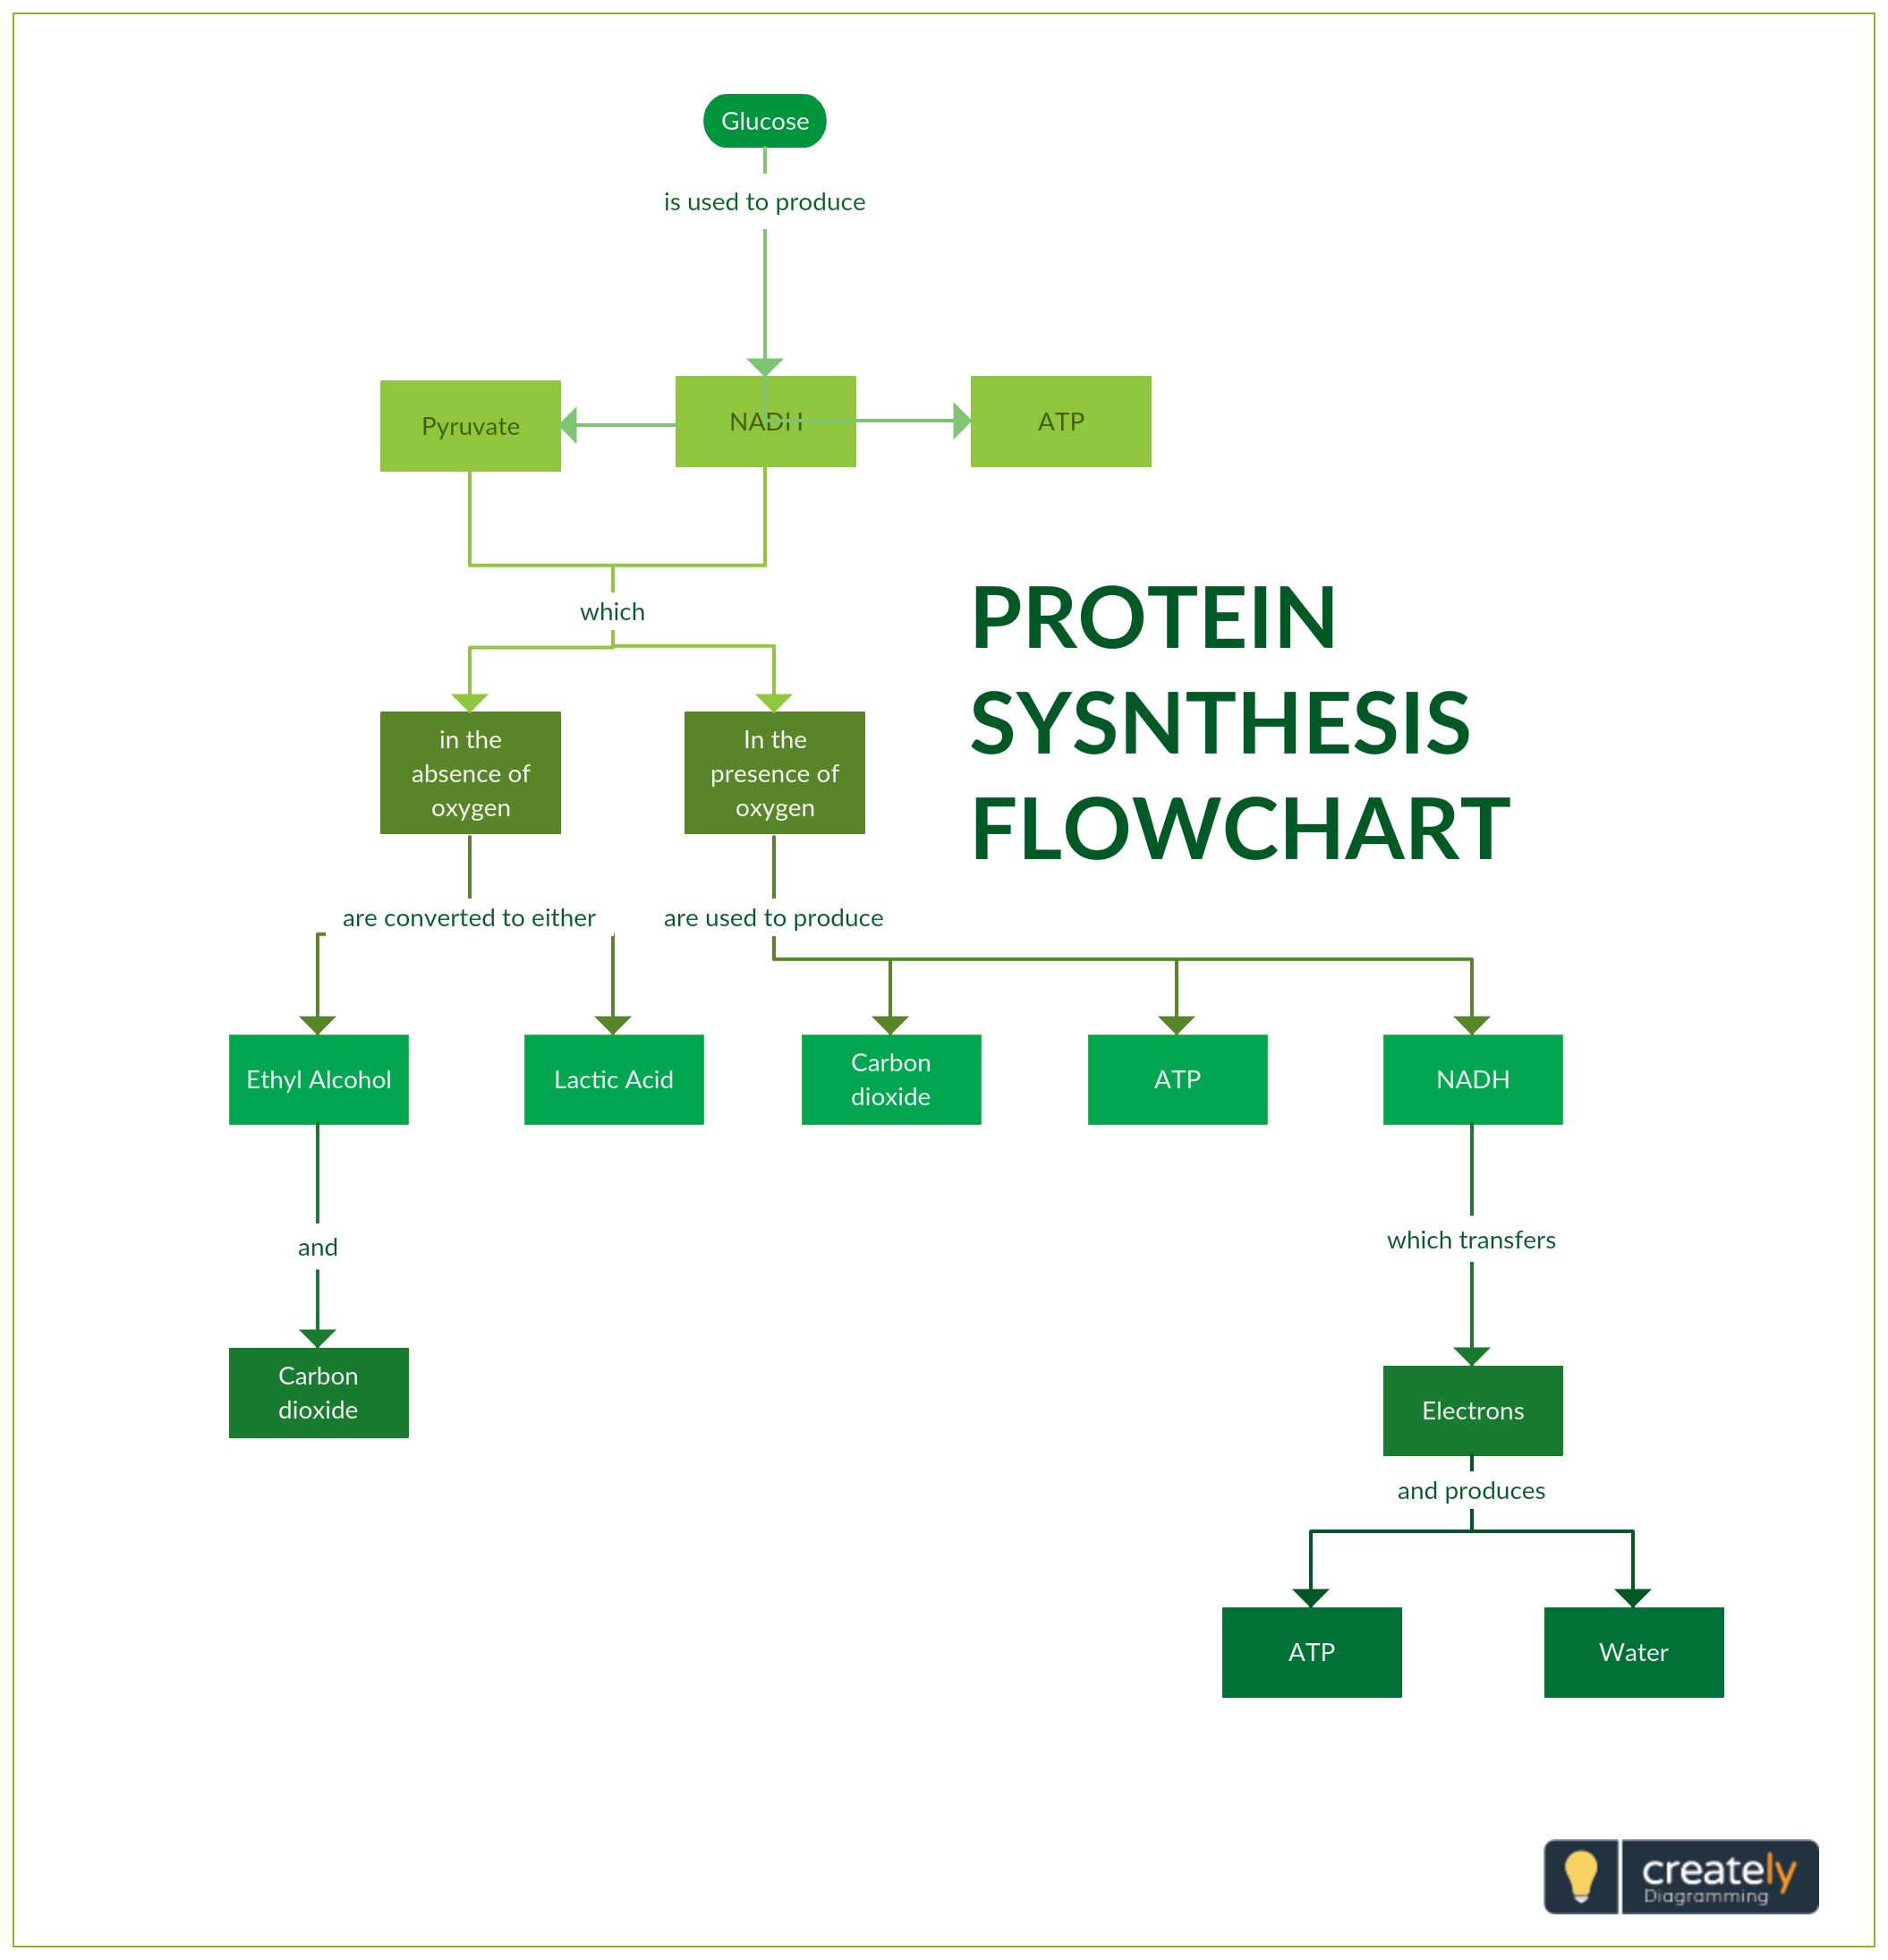 Protein Synthesis Flowchart - Protein Synthesis Flow Chart shows the process  of one of the most complicated biosynthesis mechanisms.